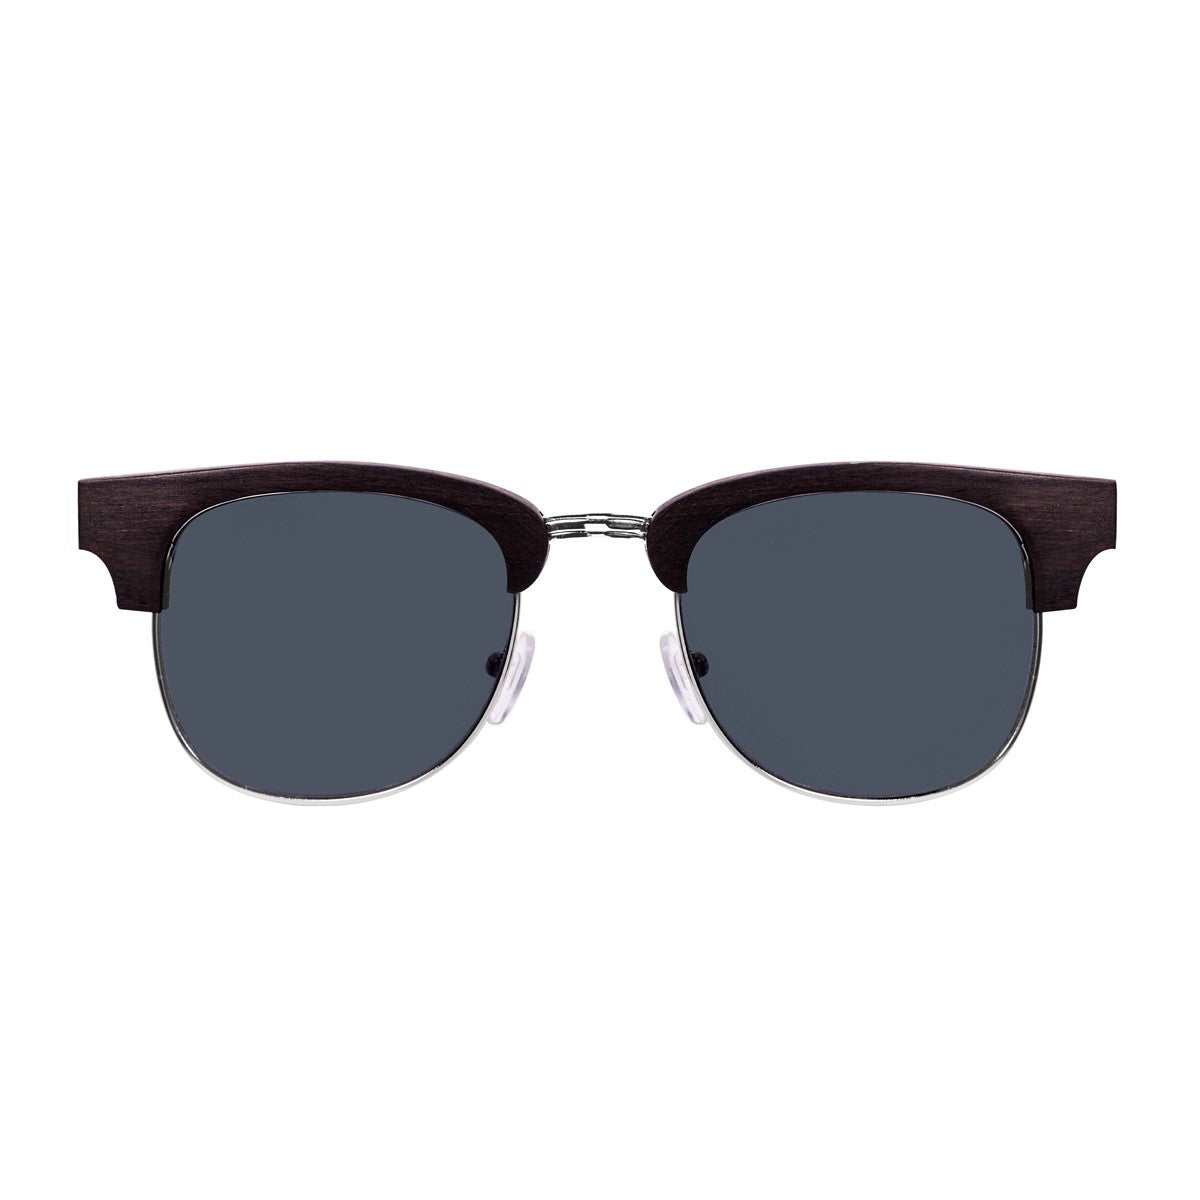 Ebony Wooden Sunglasses